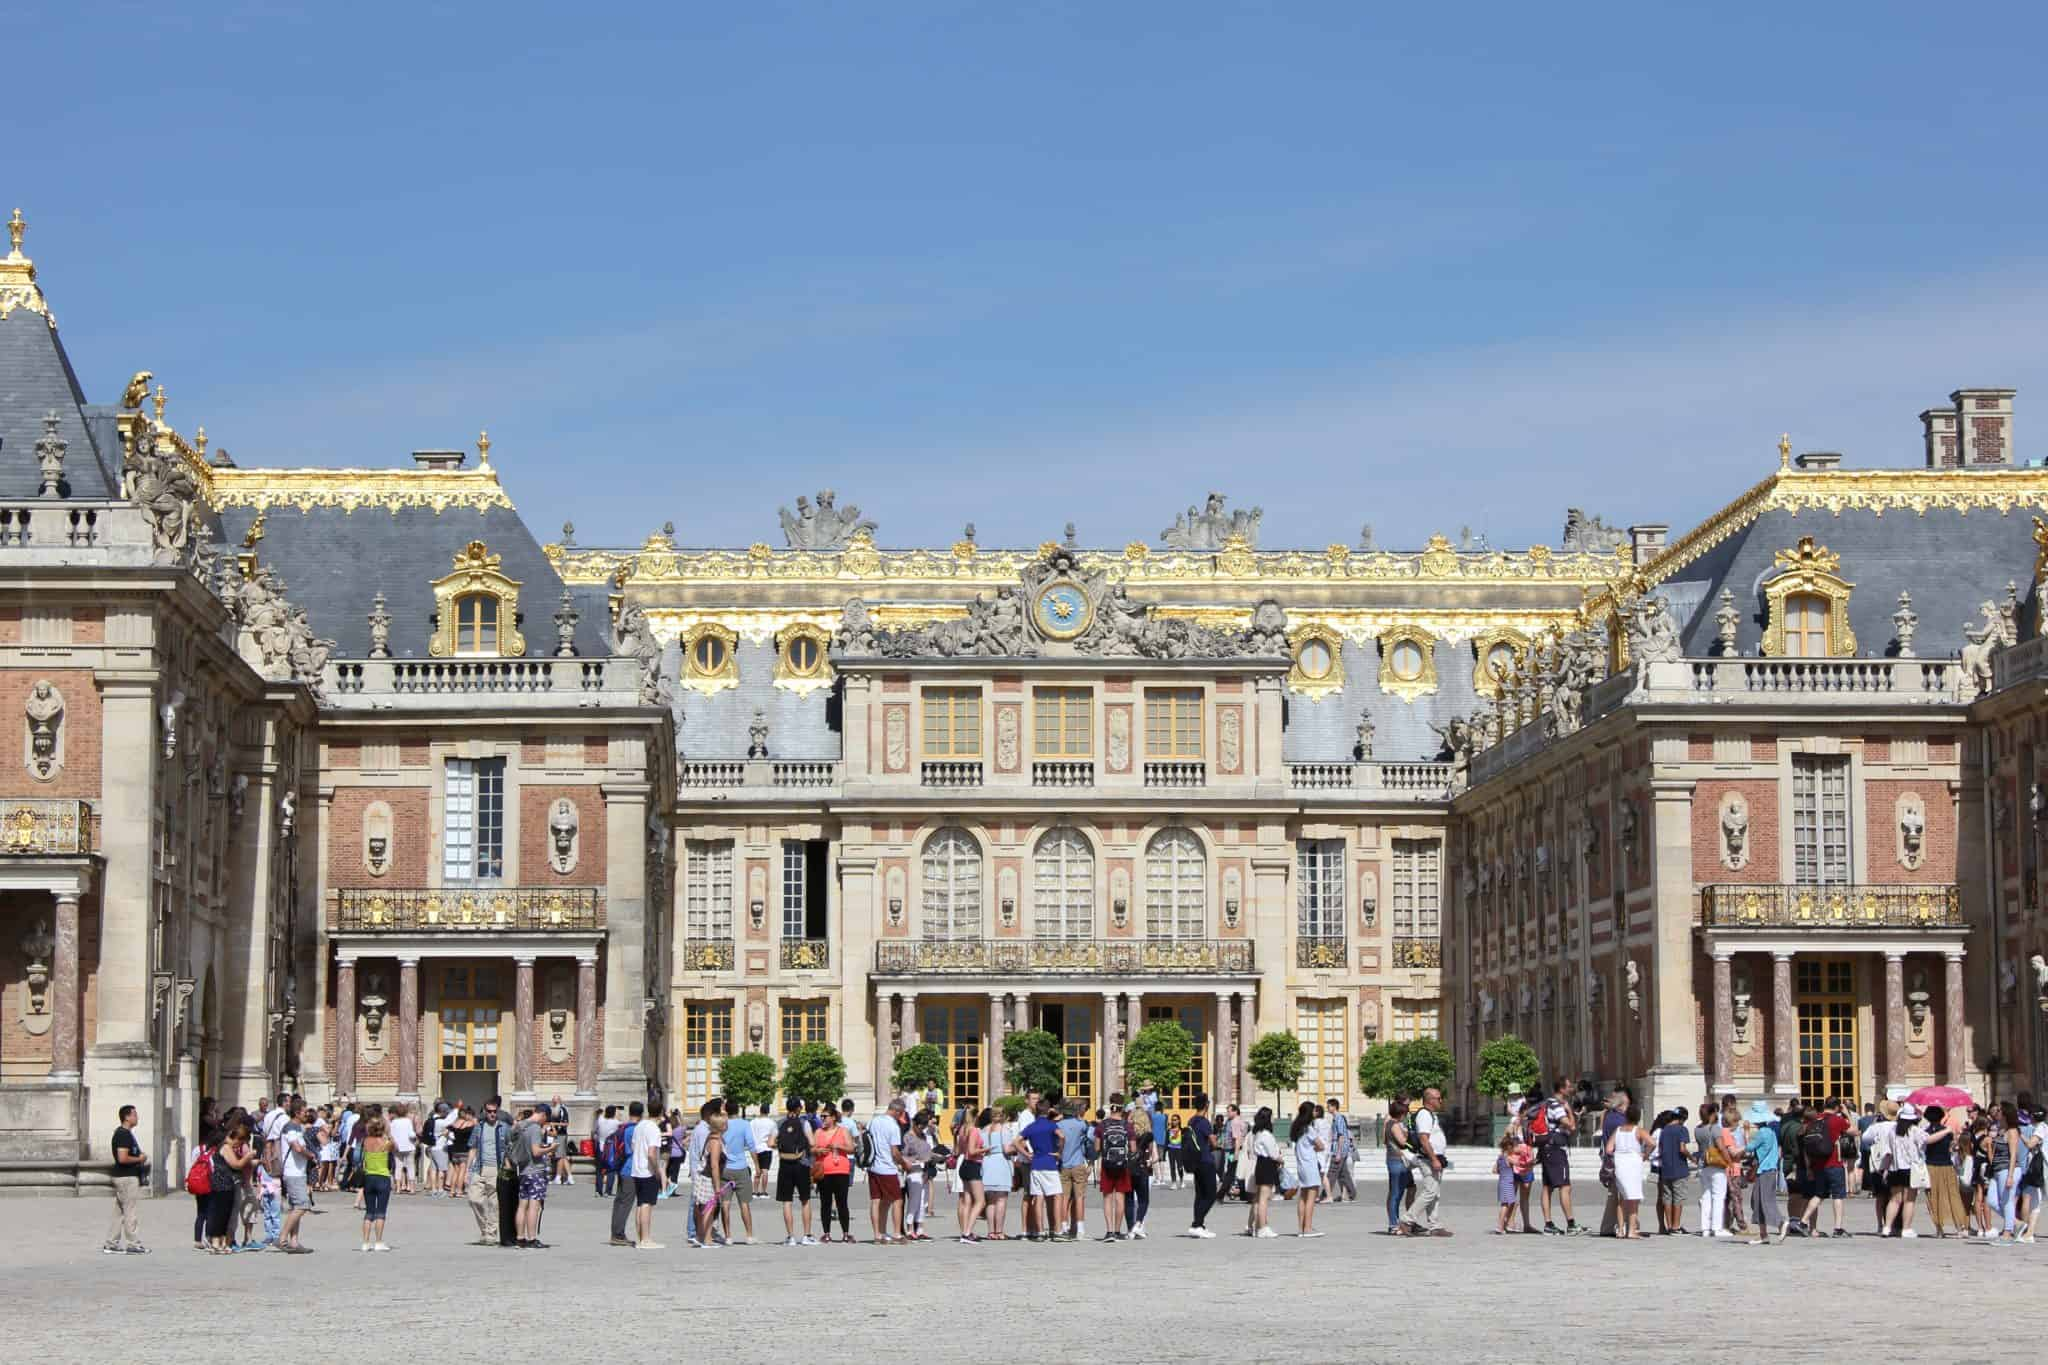 Palace of Versailles, Skip the line tickets, Palace of Versailles Gardens, Palace of Versailles history, Palace of Versailles rooms, Chateau de Versailles, things to do in Versailles